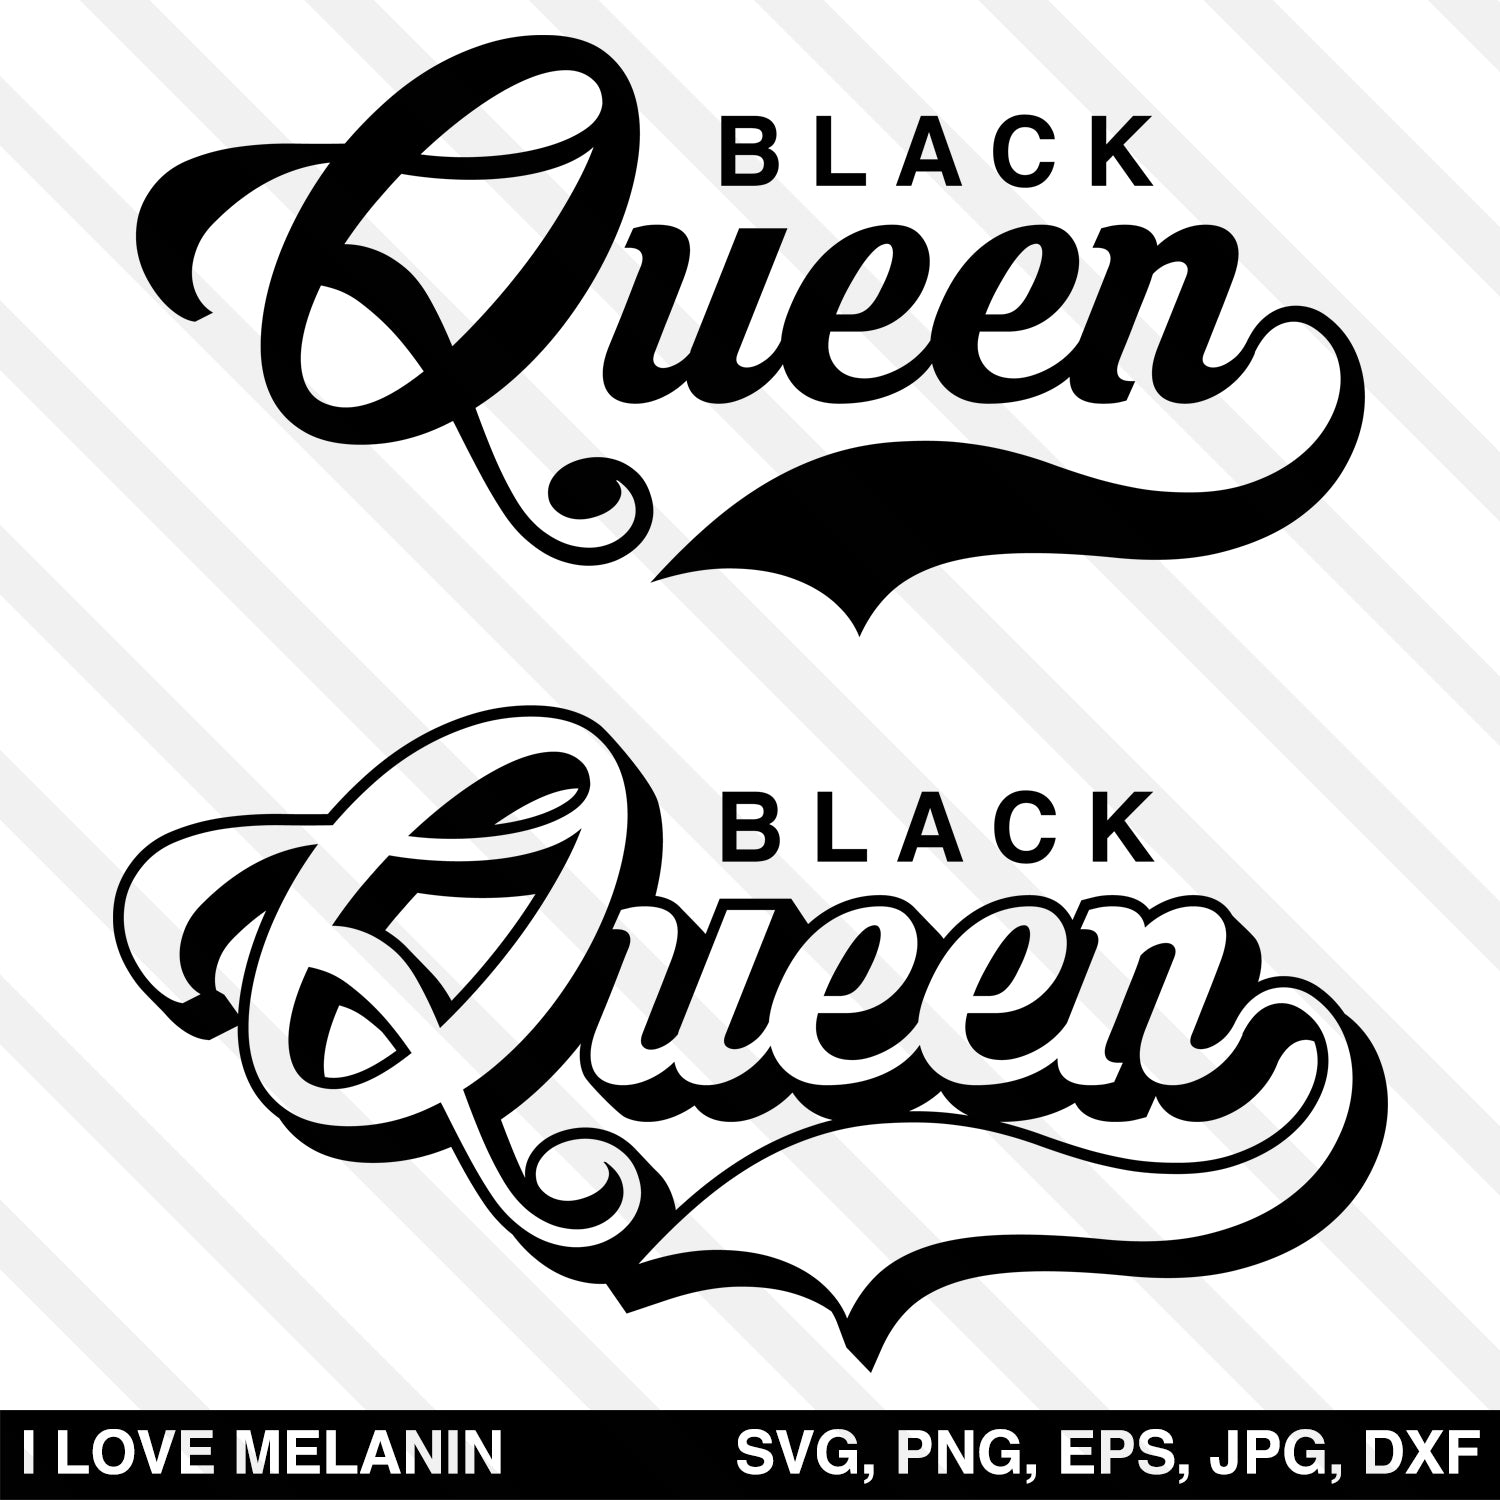 Black Queen SVG